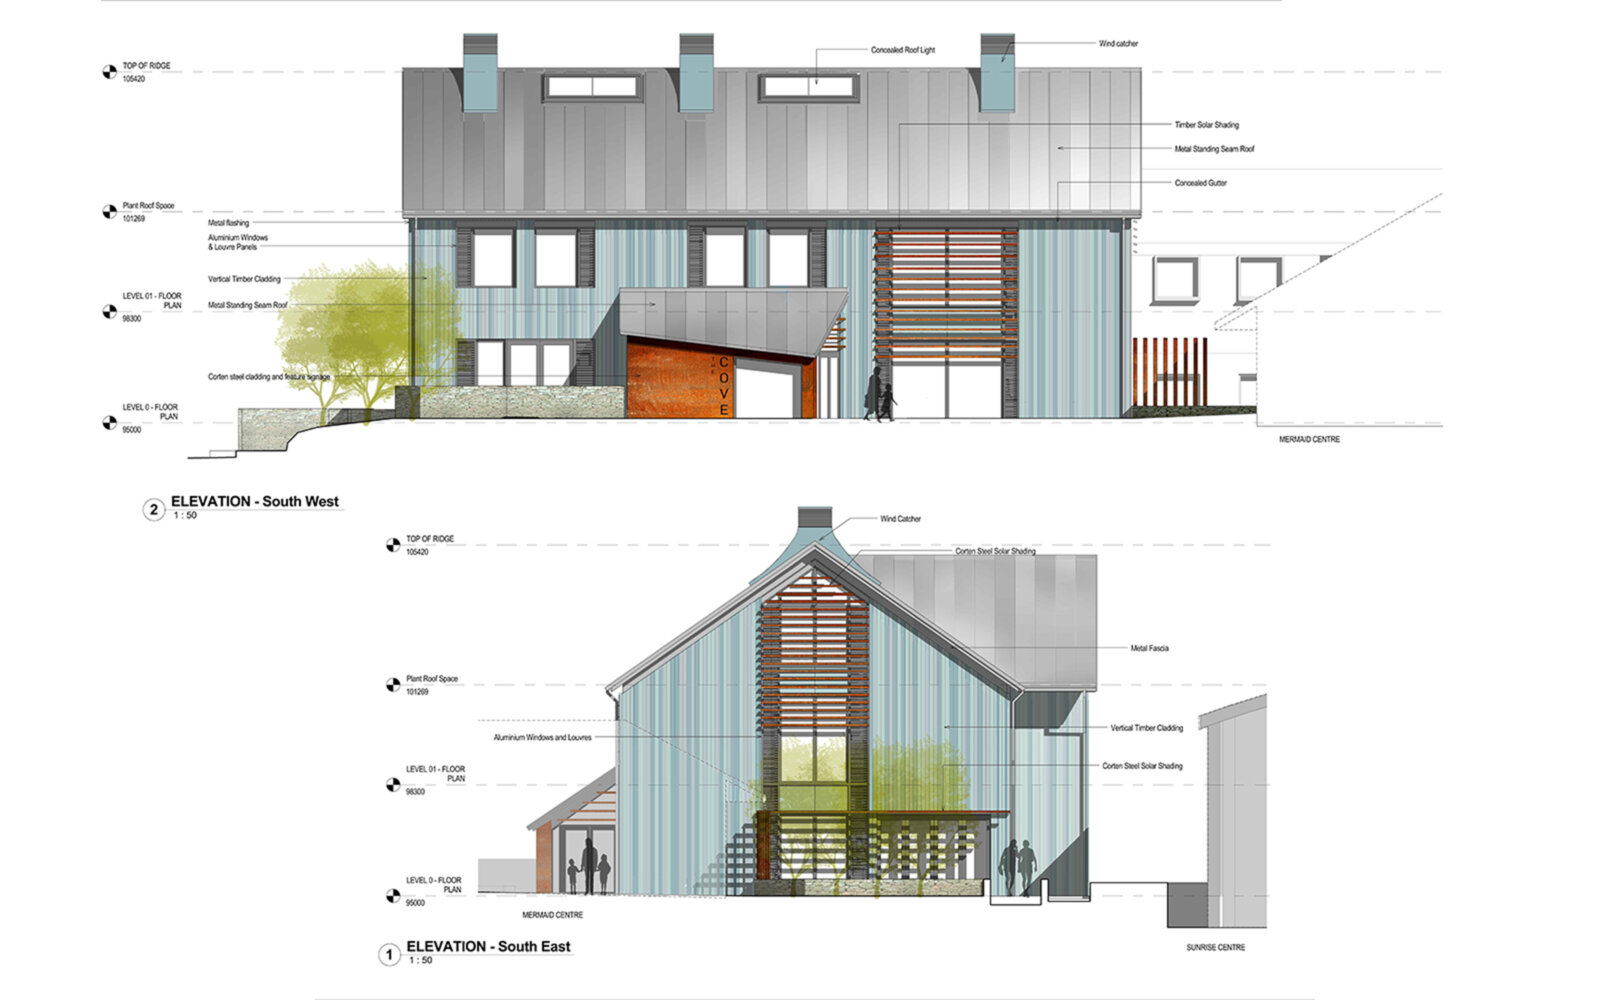 The Cove Macmillan Cancer Support Centre elevations